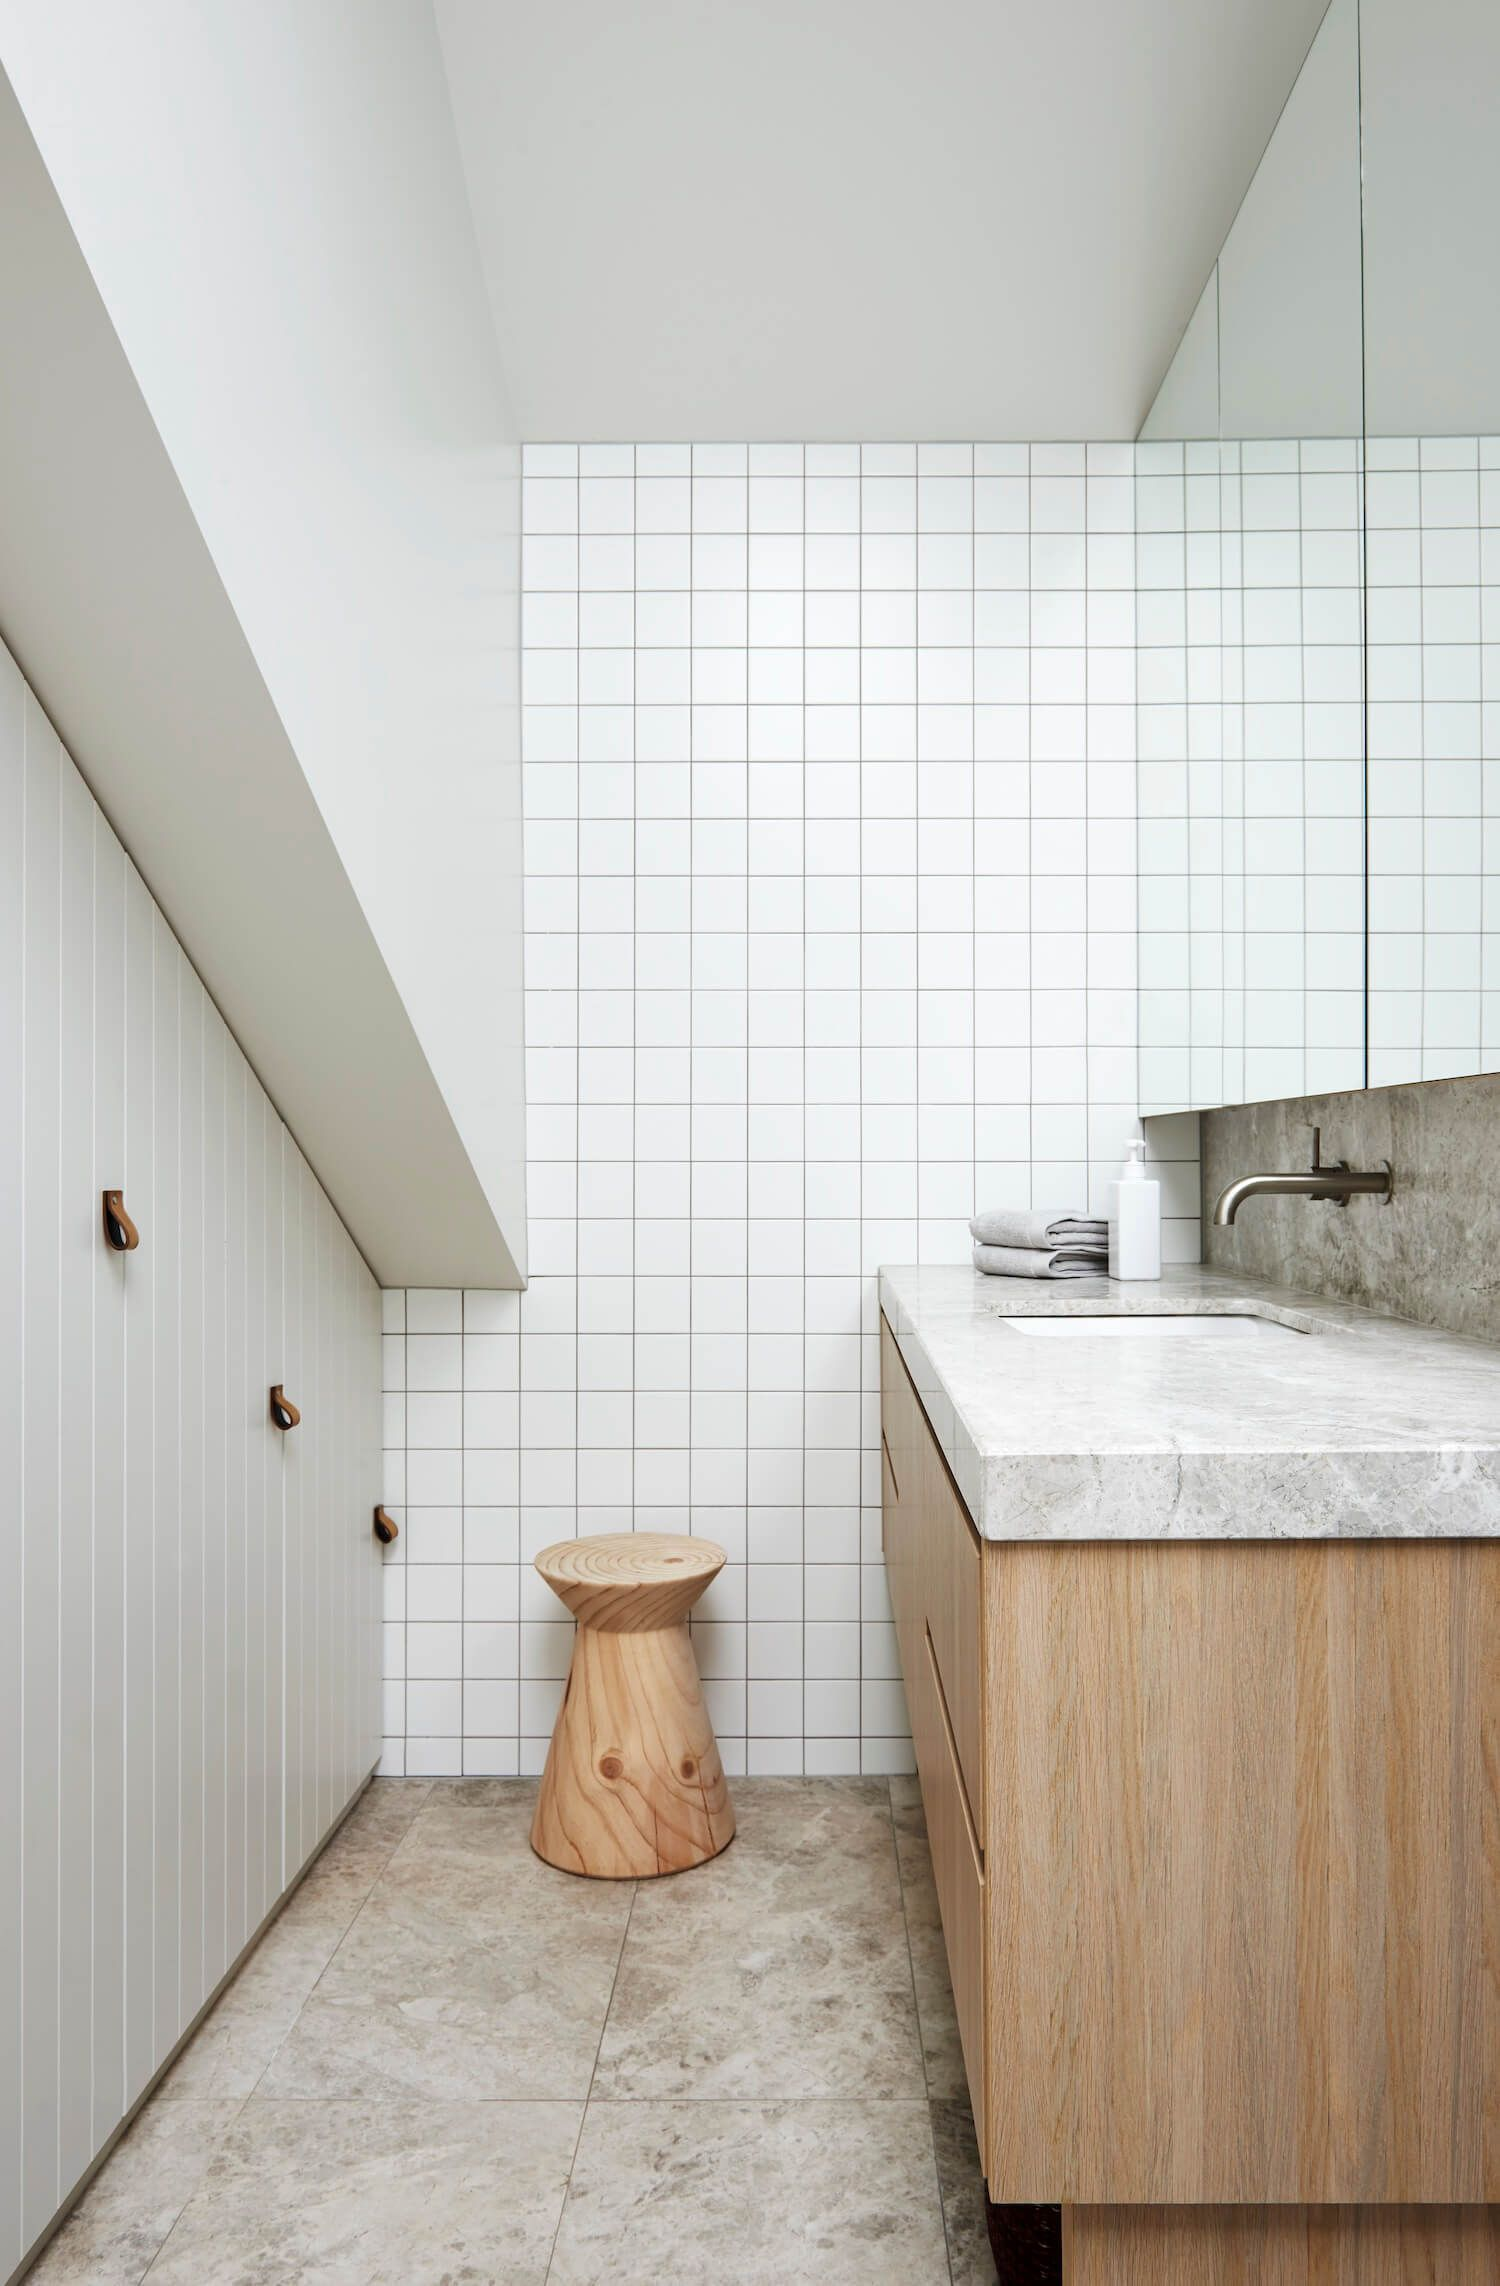 Designing Timeless Bathrooms with Abey   est living   Home Repair ...